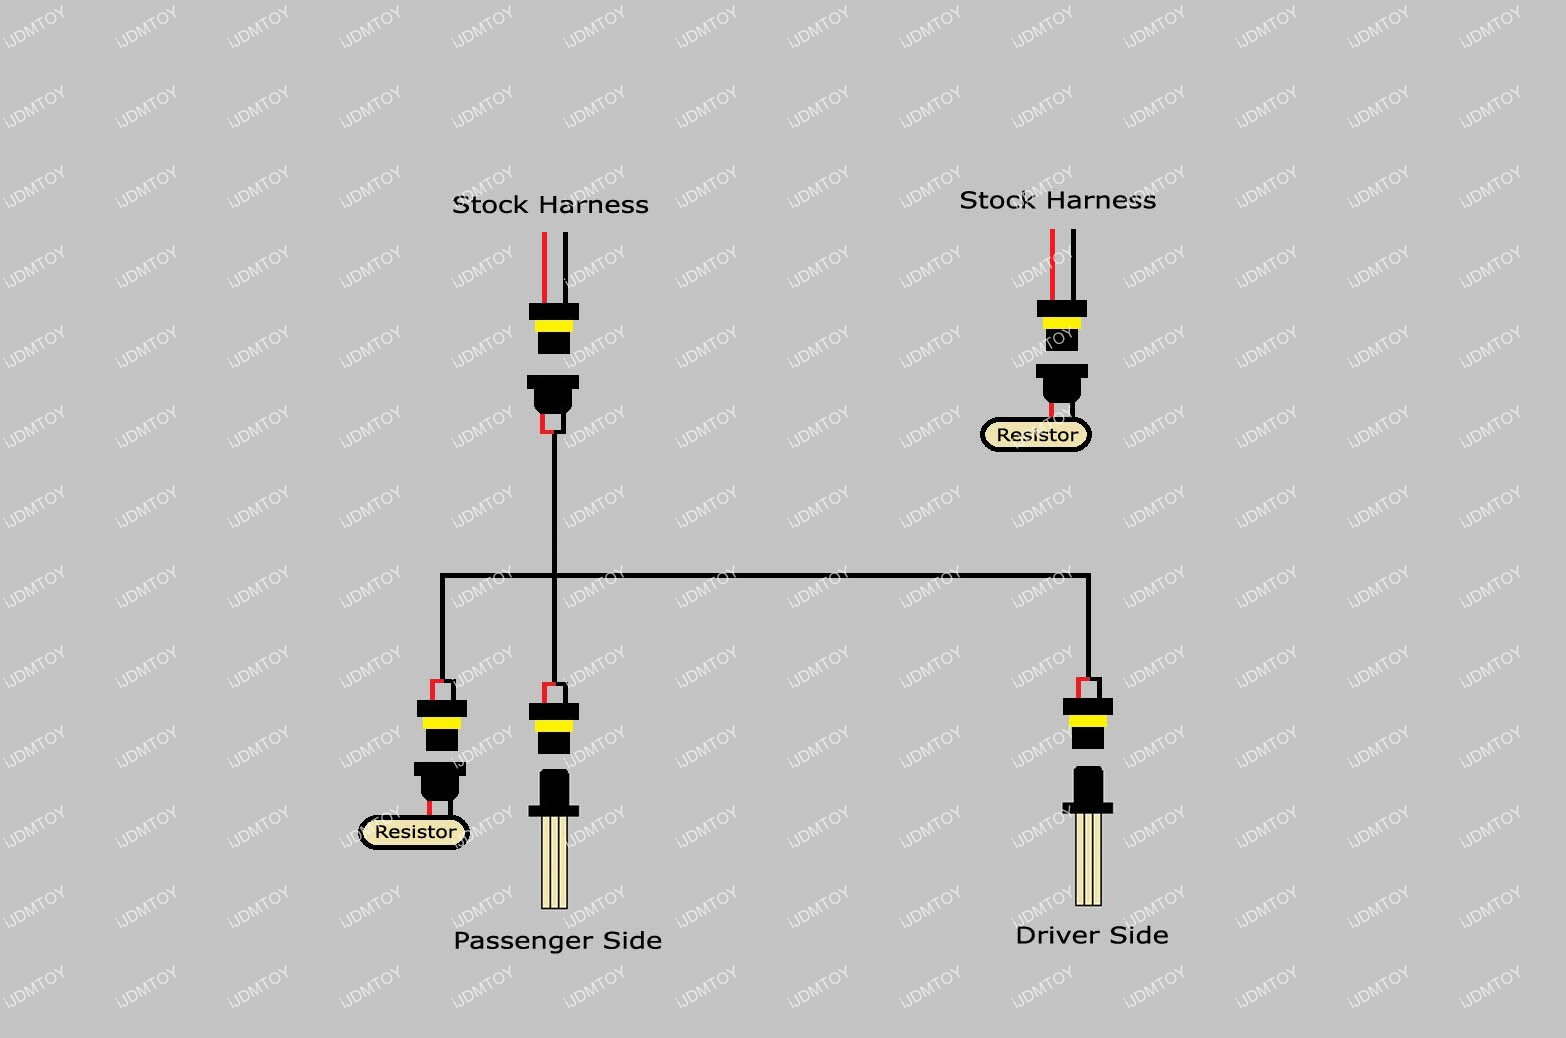 40q0t Reverse Light Switch Transmission Need likewise 1962 Chevy Truck Wiring Diagram further 1752934 2004 2007 Cts V Grounding Diagram additionally 229 besides 3yhni 2003 Ford Focus Heats When Turn Heater. on backup light wiring diagram